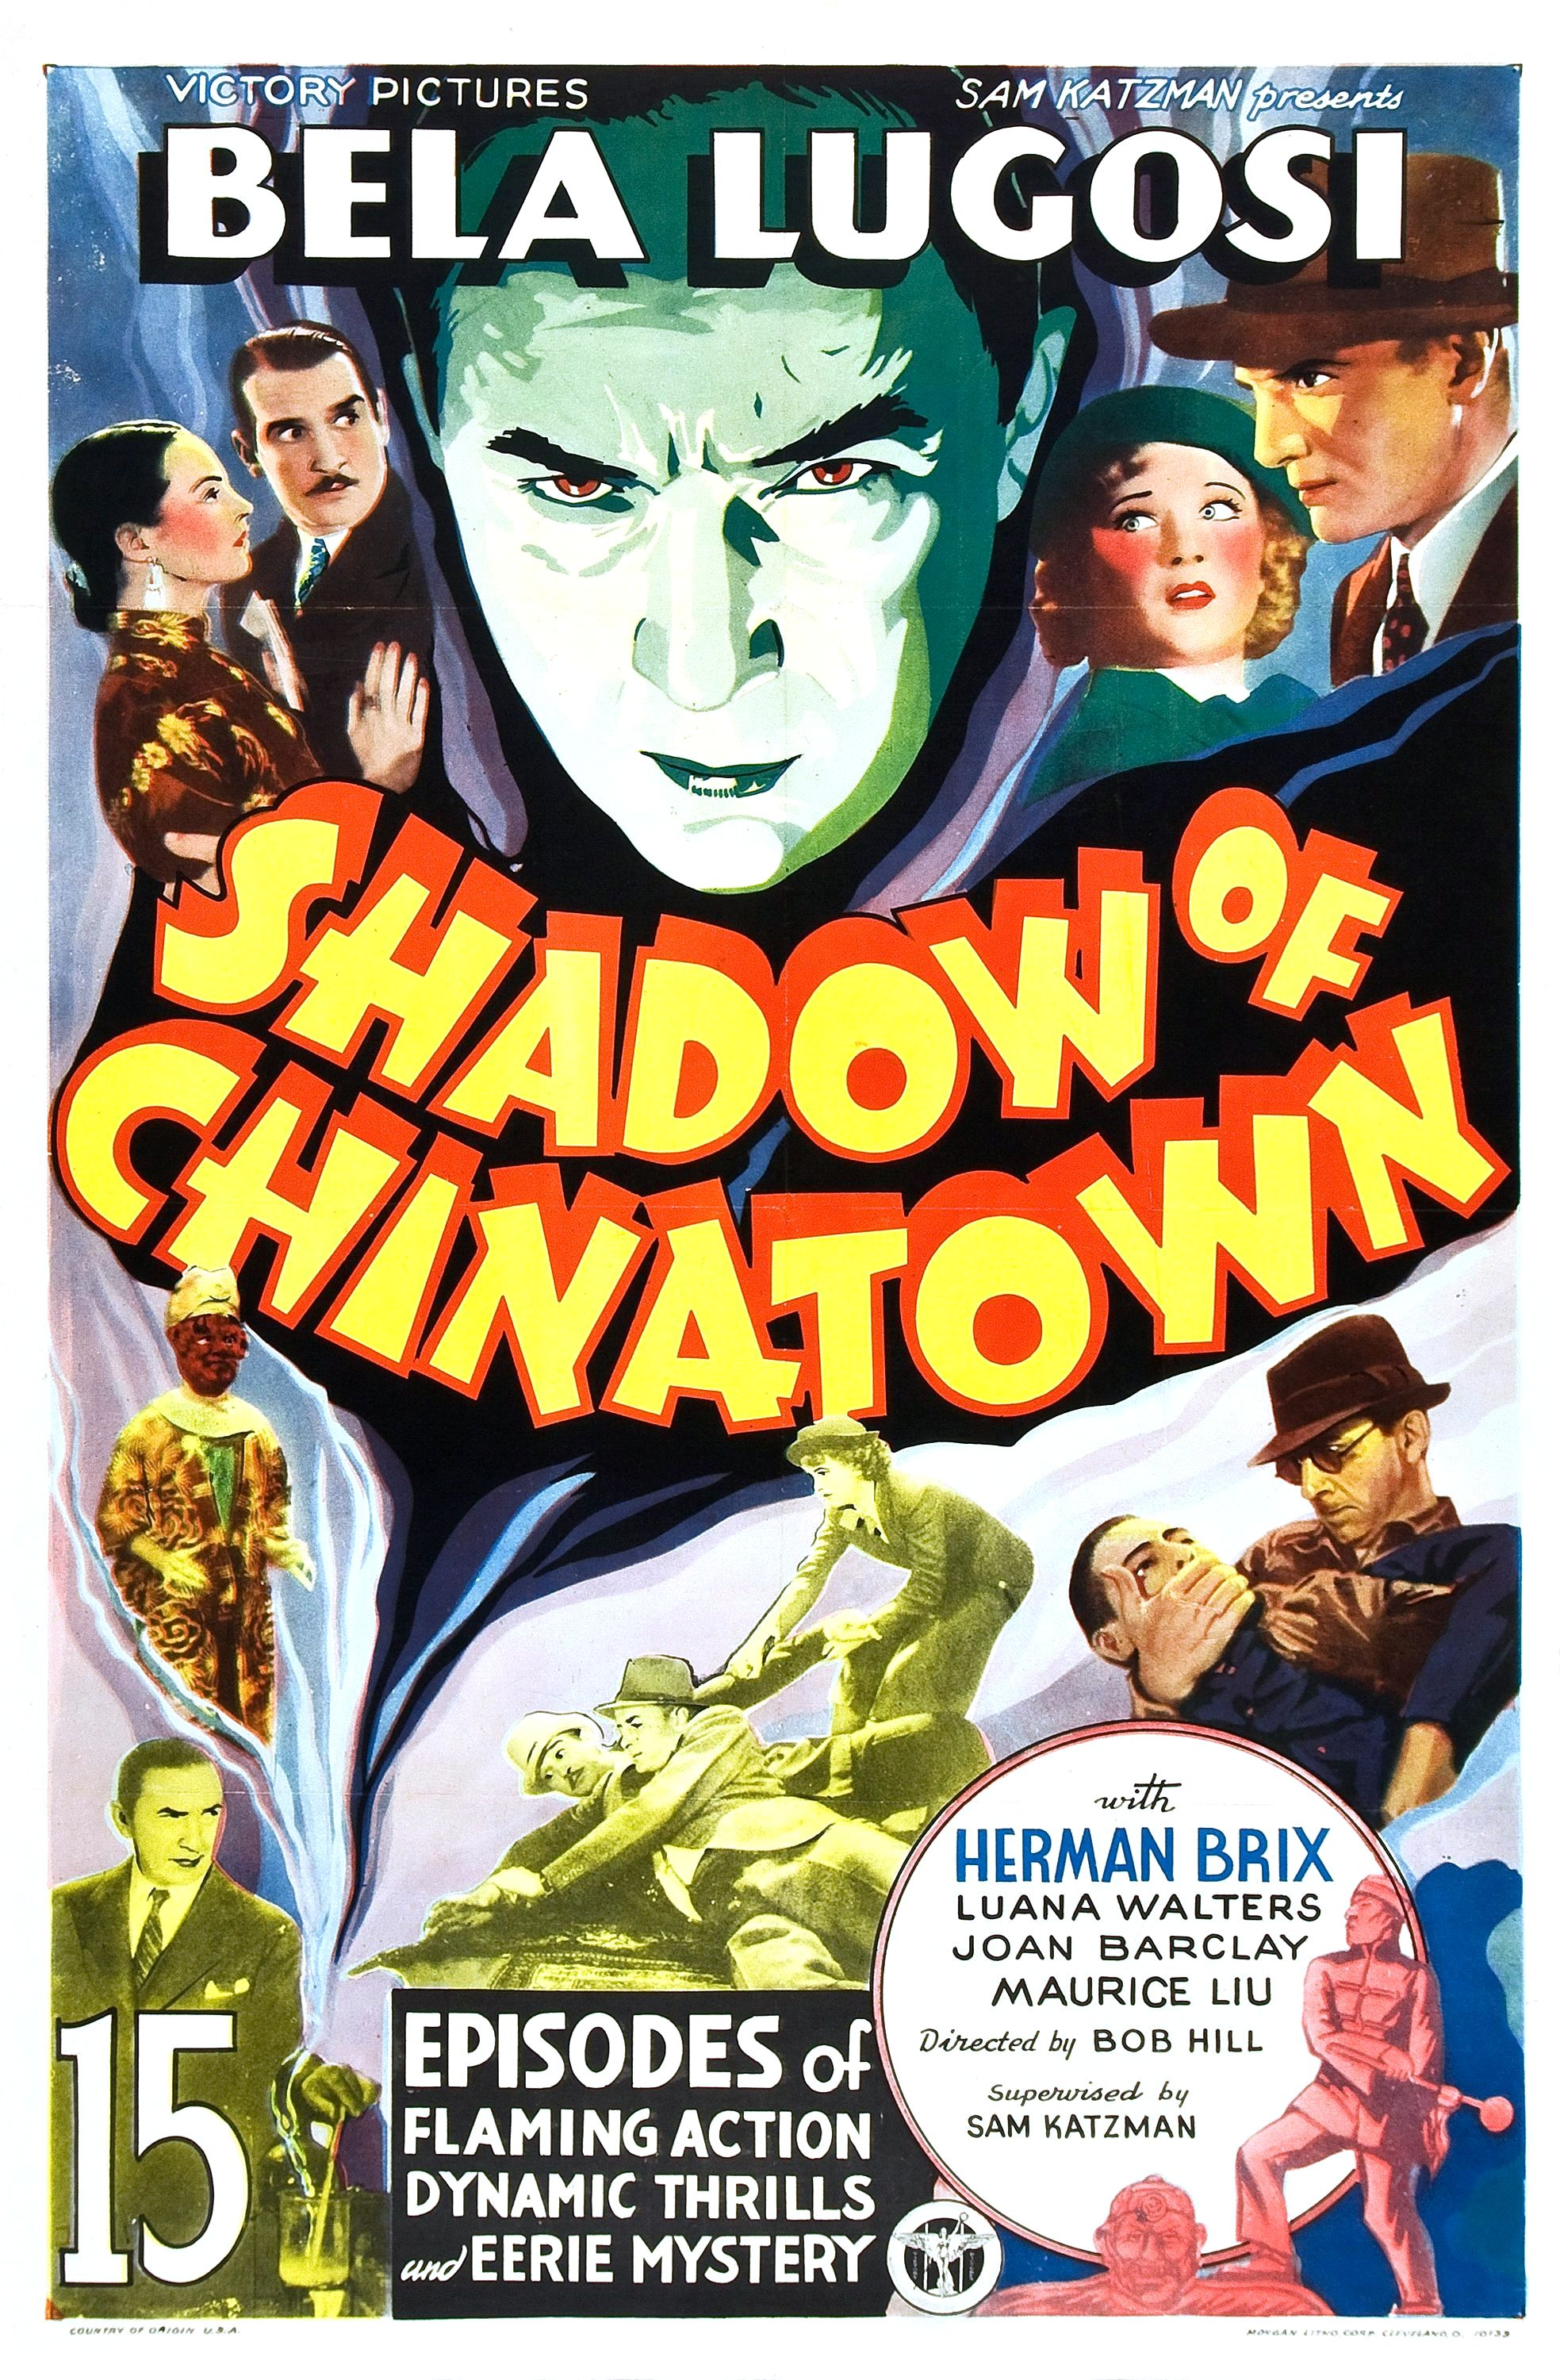 Shadow of Chinatown (1936)